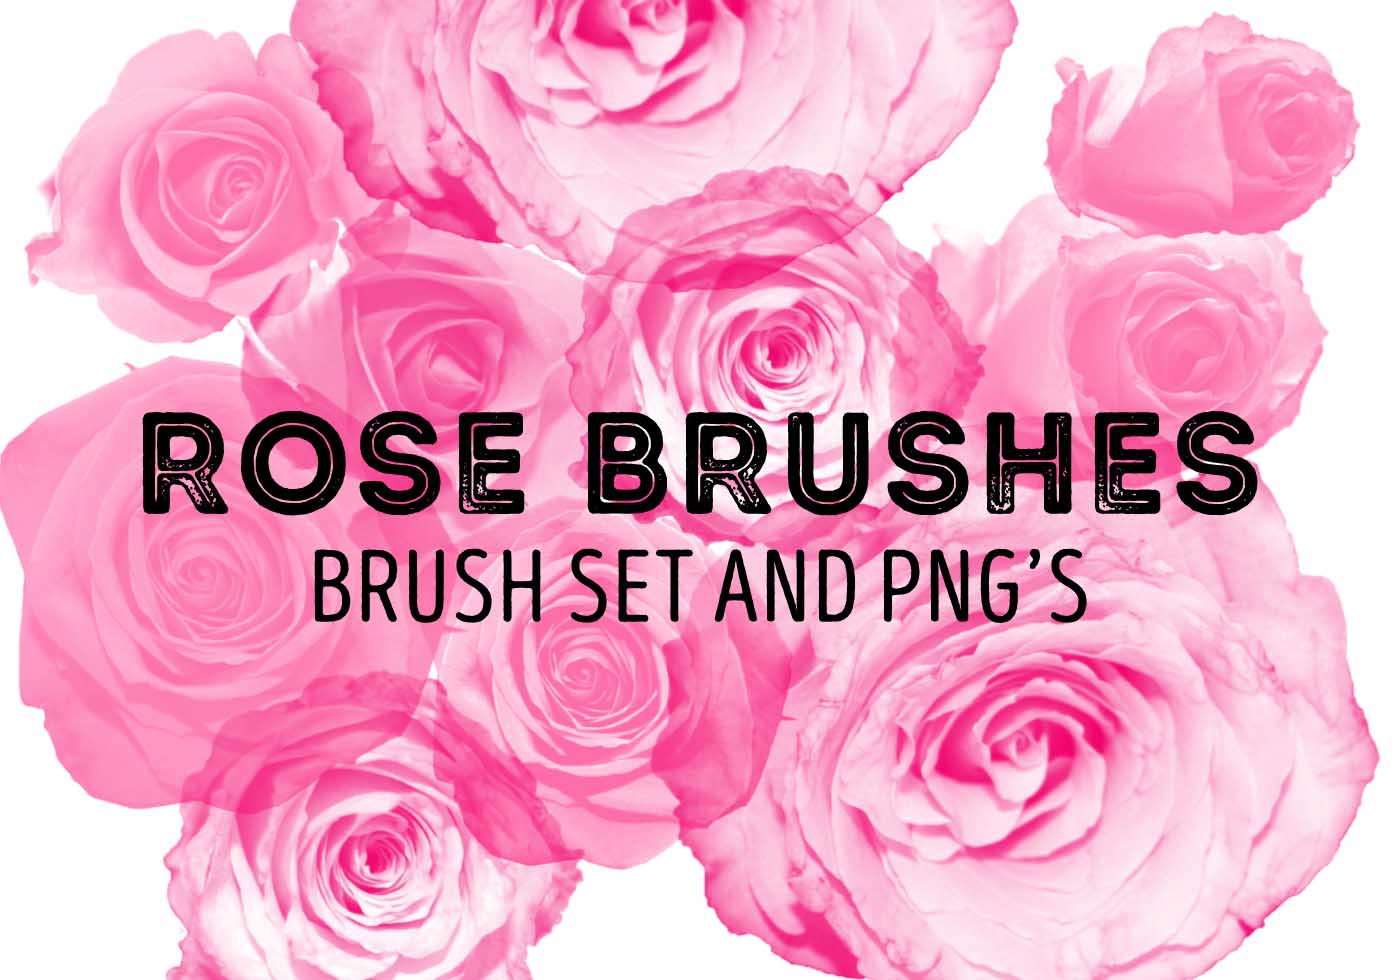 20 Cloud Brushes - Artistic Brushes | Art